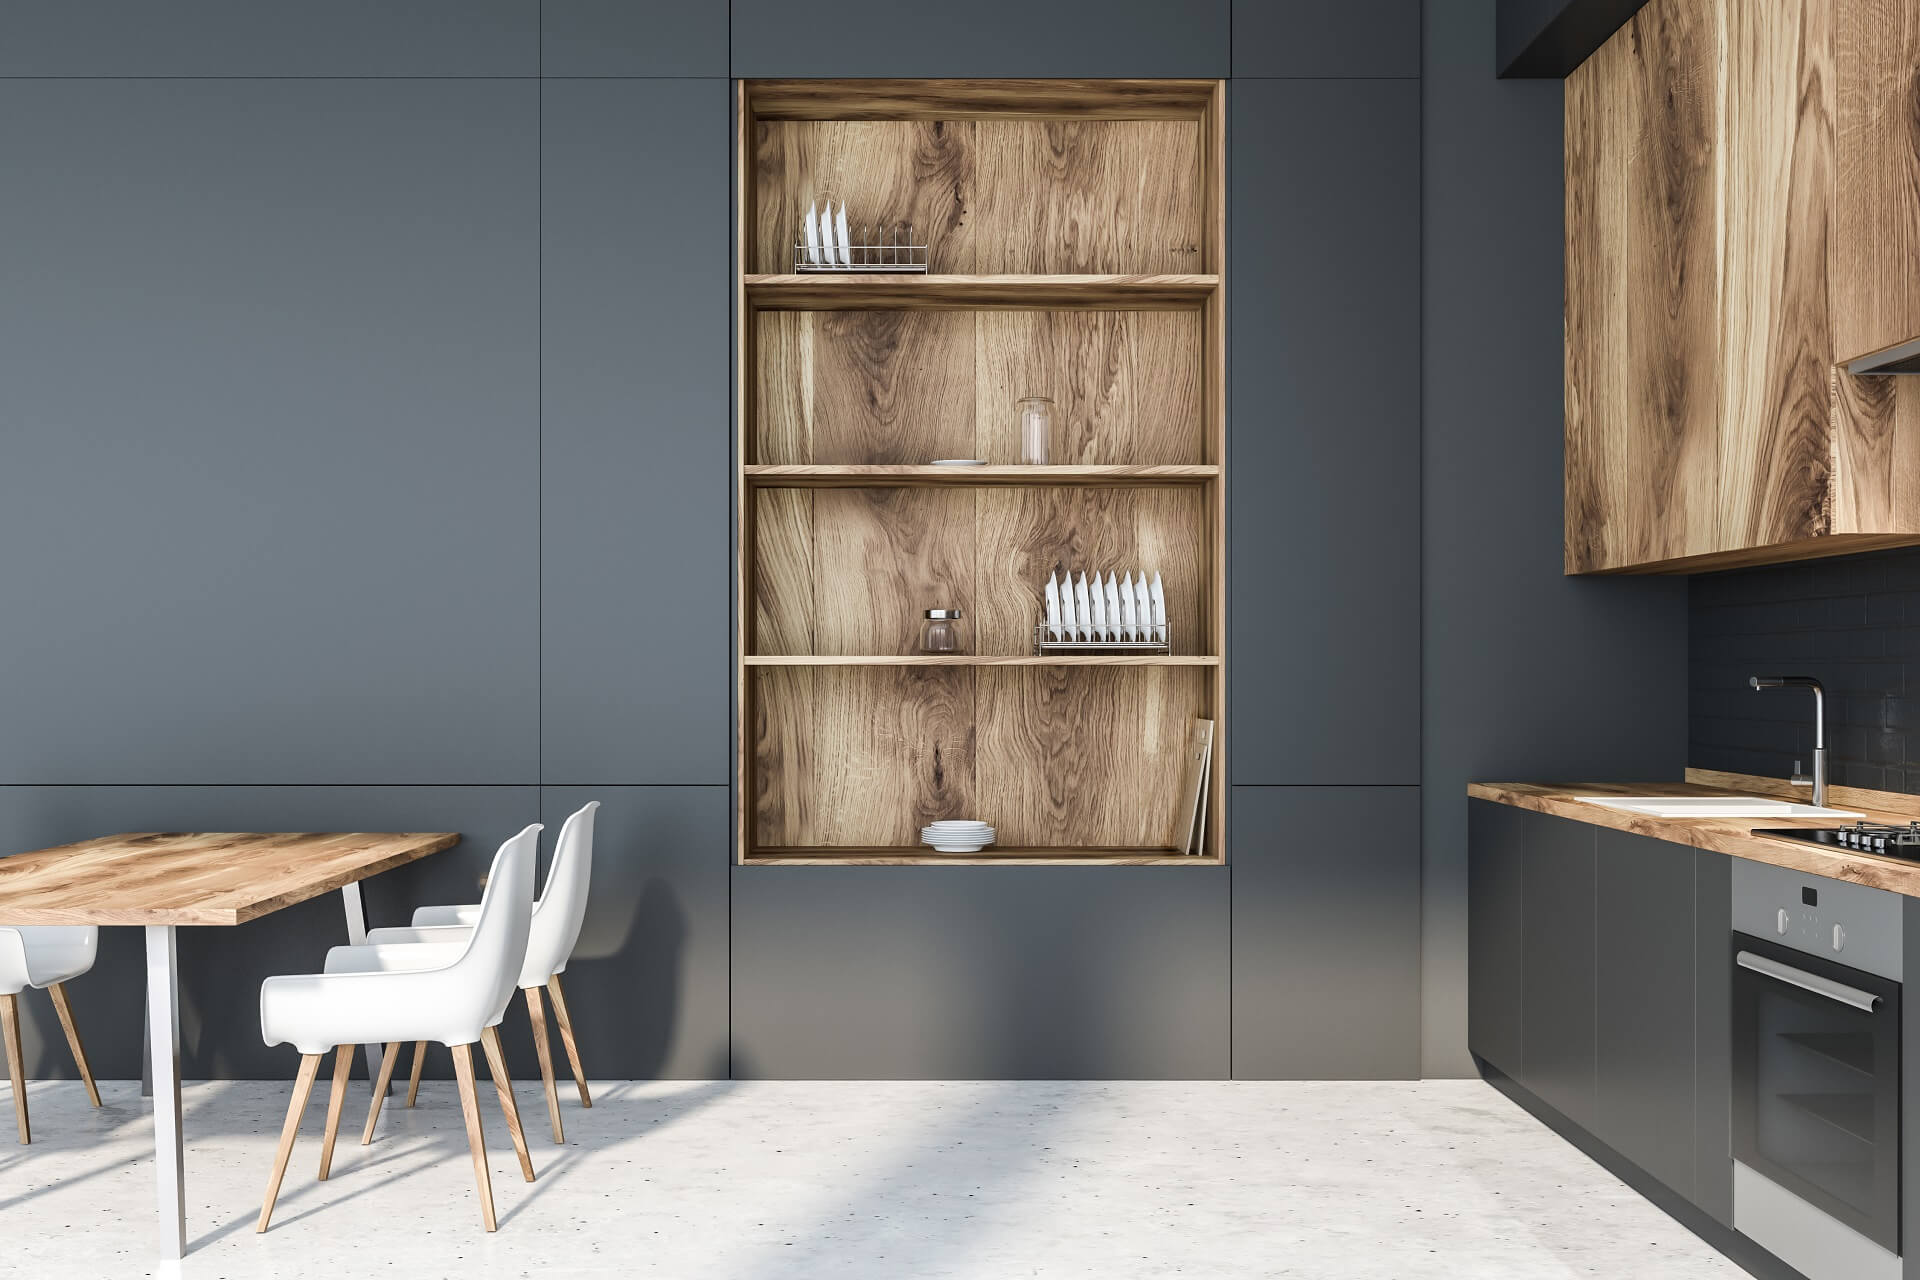 GREY WITH WOOD ACCENTS RENDER